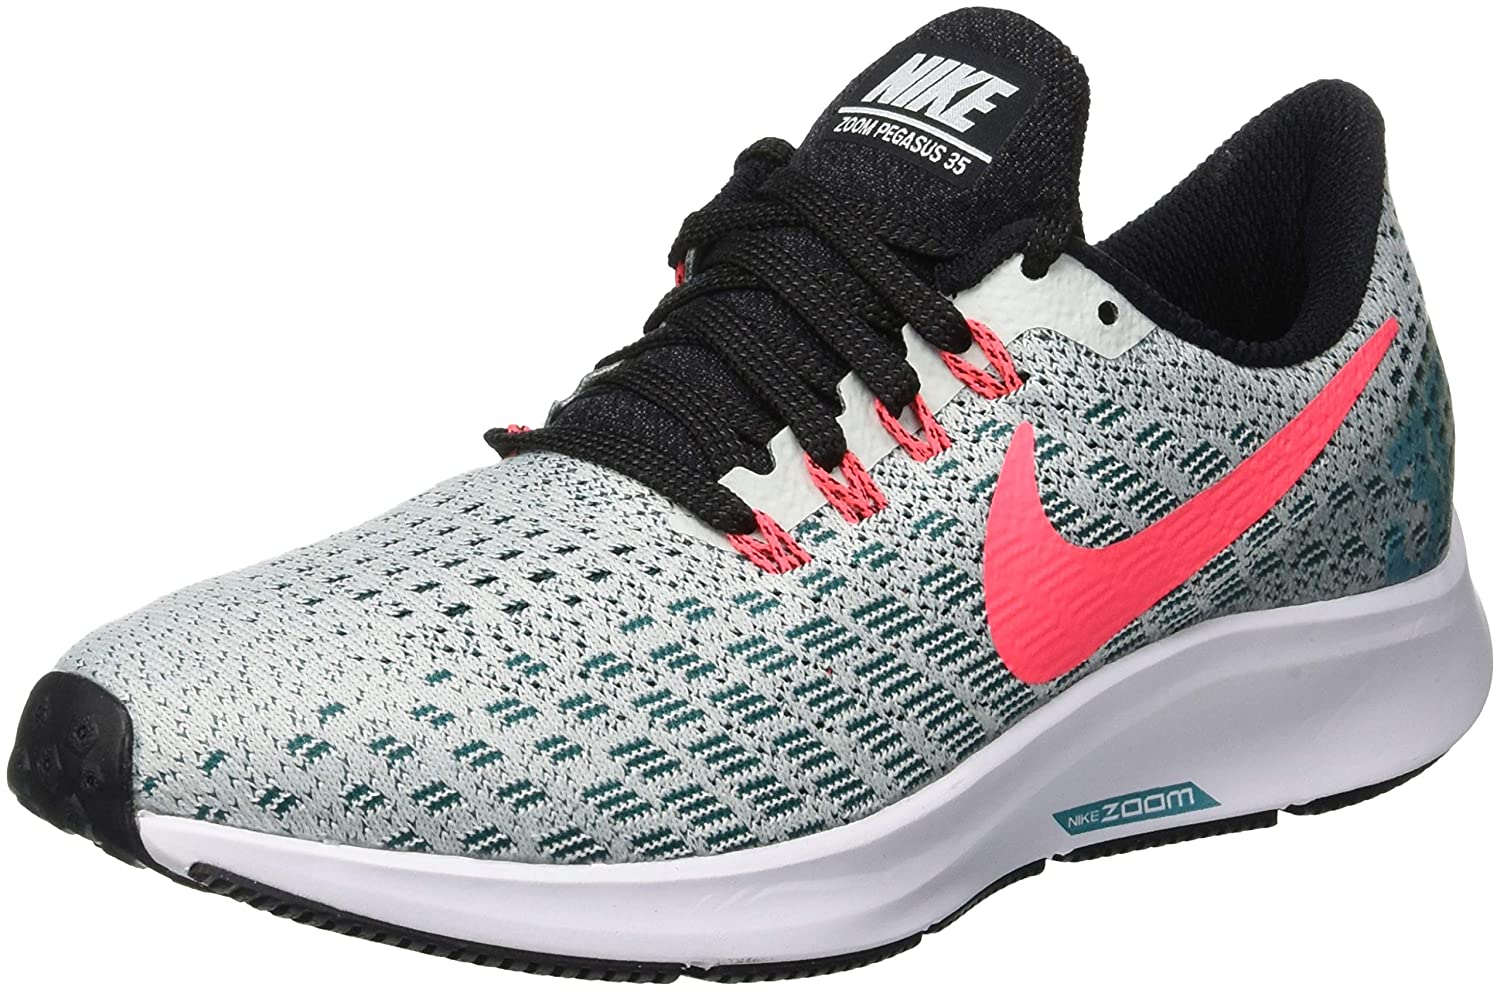 wholesale dealer 62193 87c24 Nike Women's Air Zoom Pegasus 35, Barely Grey/Hot Punch/Geode US 8.5